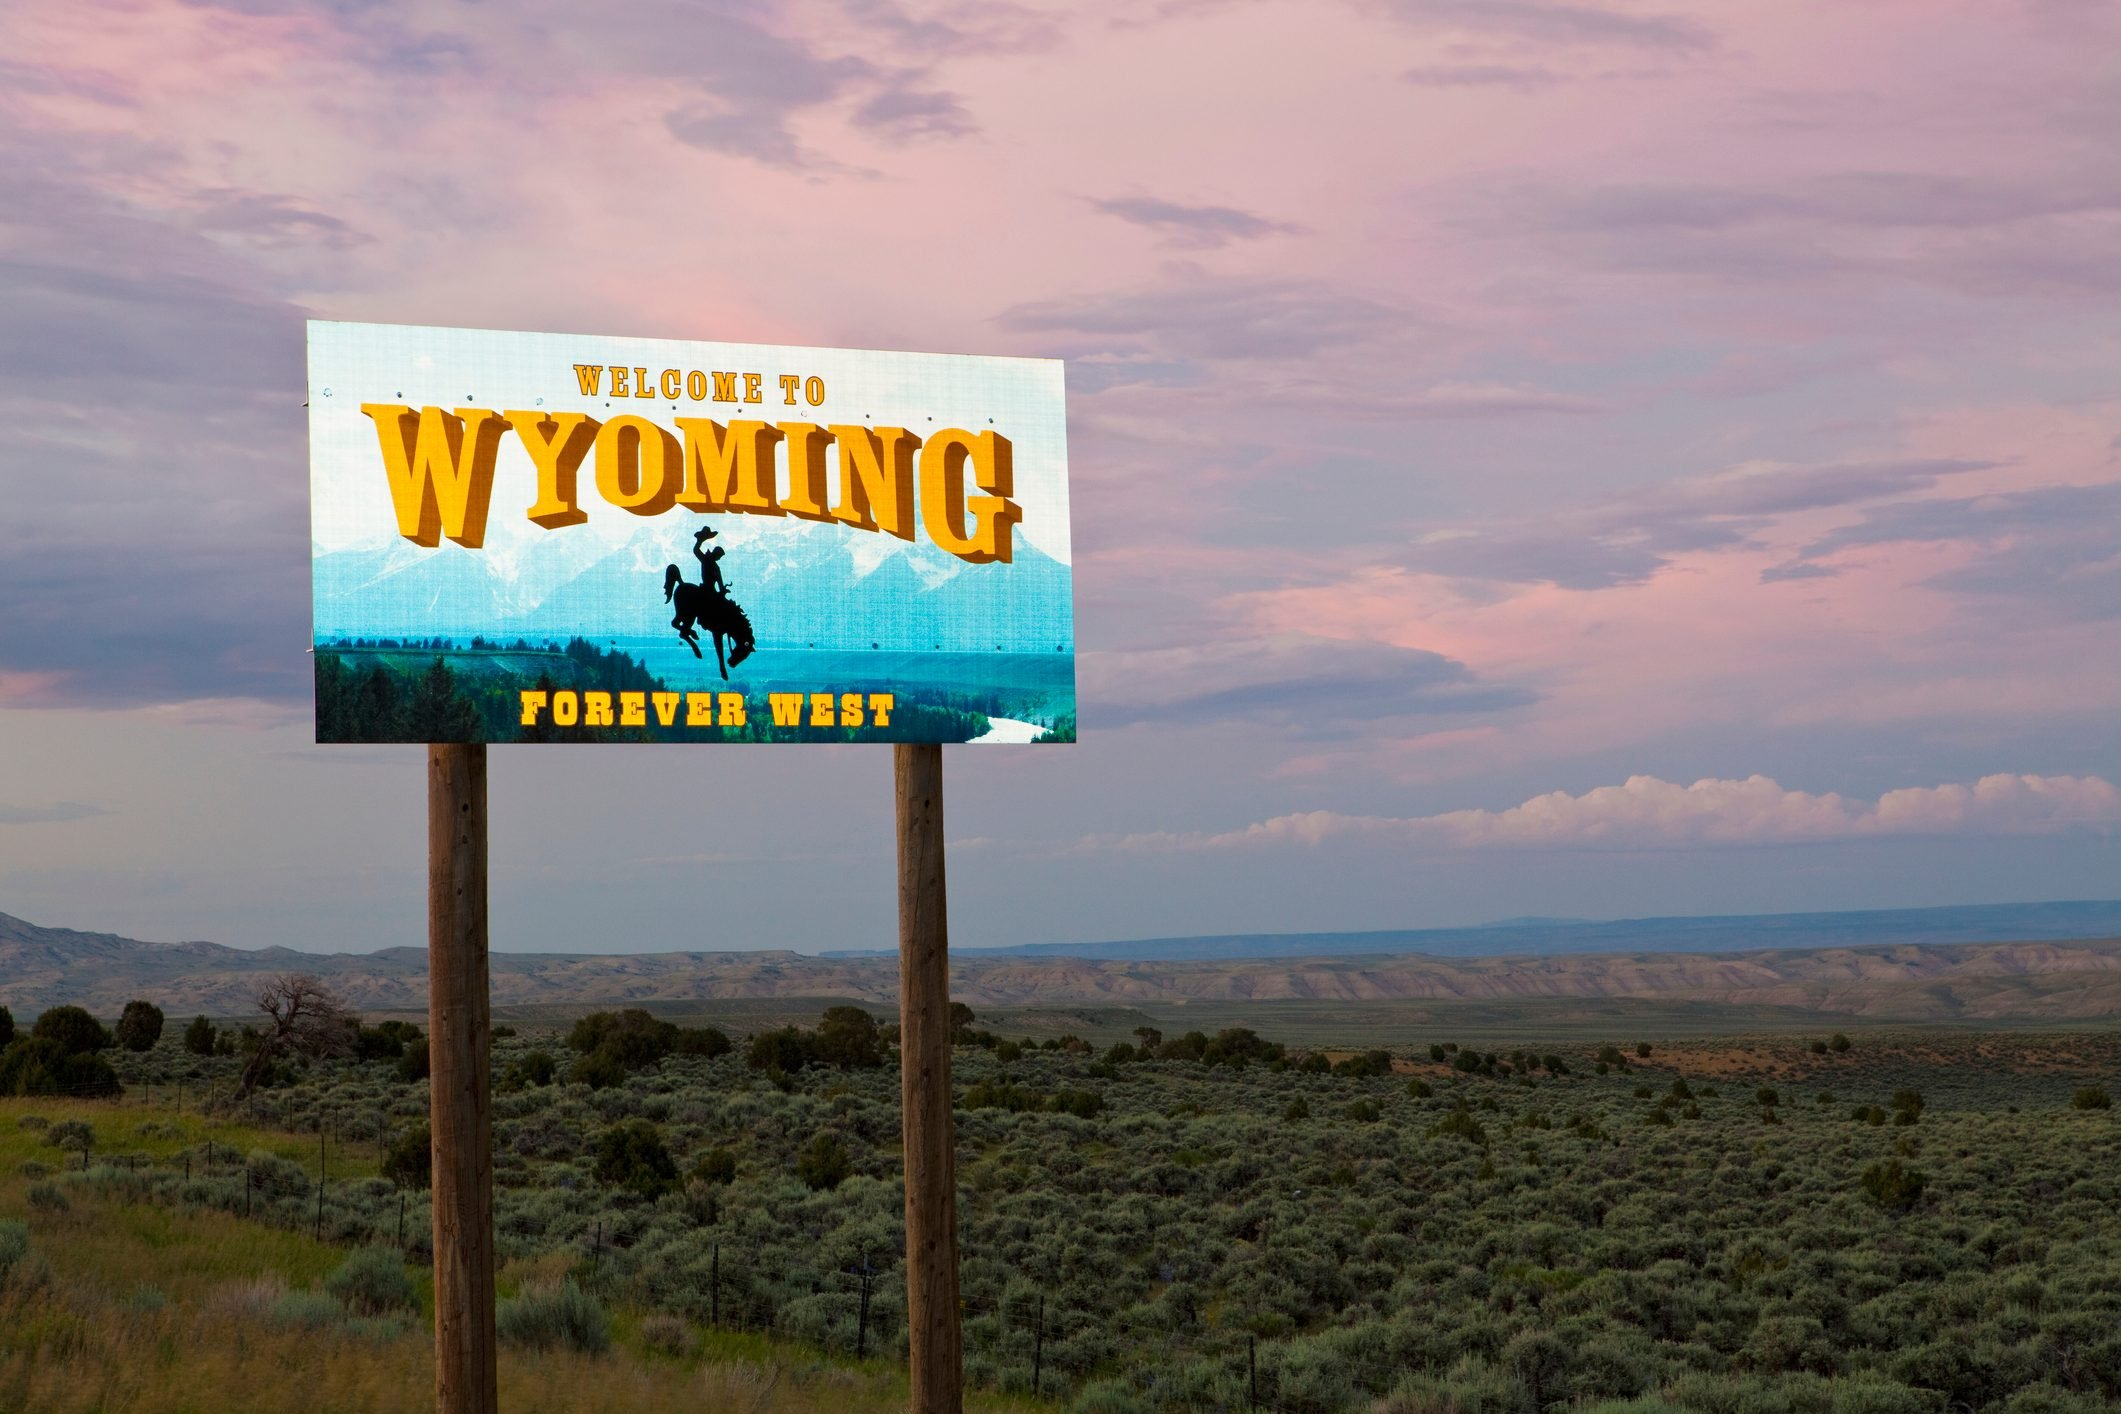 Cowboy on bucking bronco on Welcome to Wyoming sign, Wyoming, United States